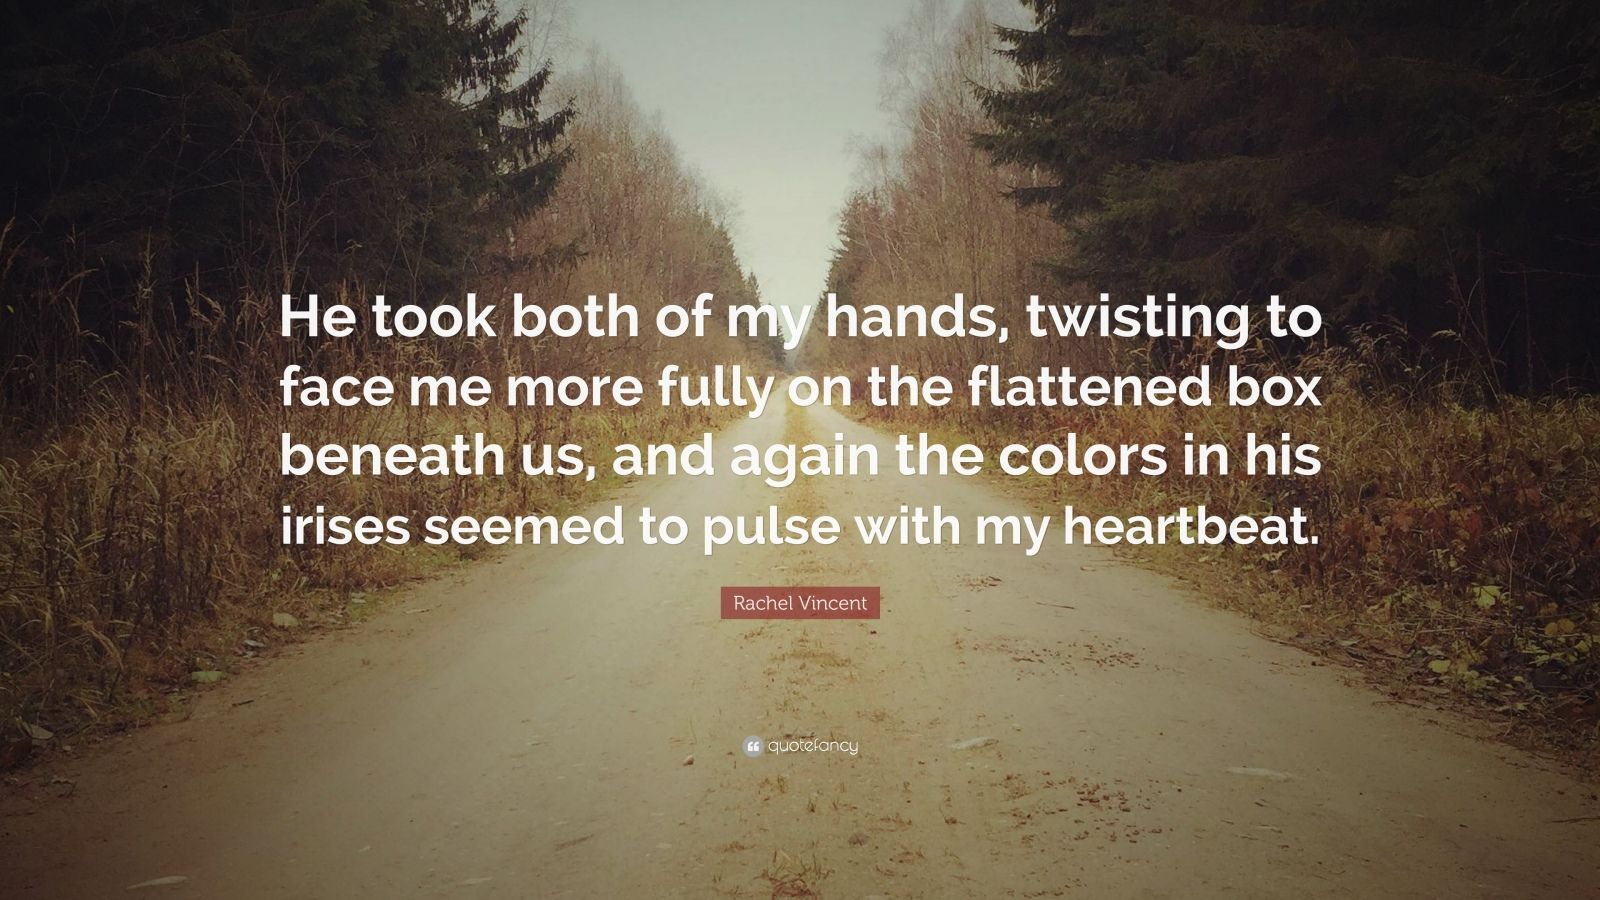 """Rachel Vincent Quote: """"He took both of my hands, twisting to face me more fully on the flattened box beneath us, and again the colors in his irises seemed to pulse with my heartbeat."""""""